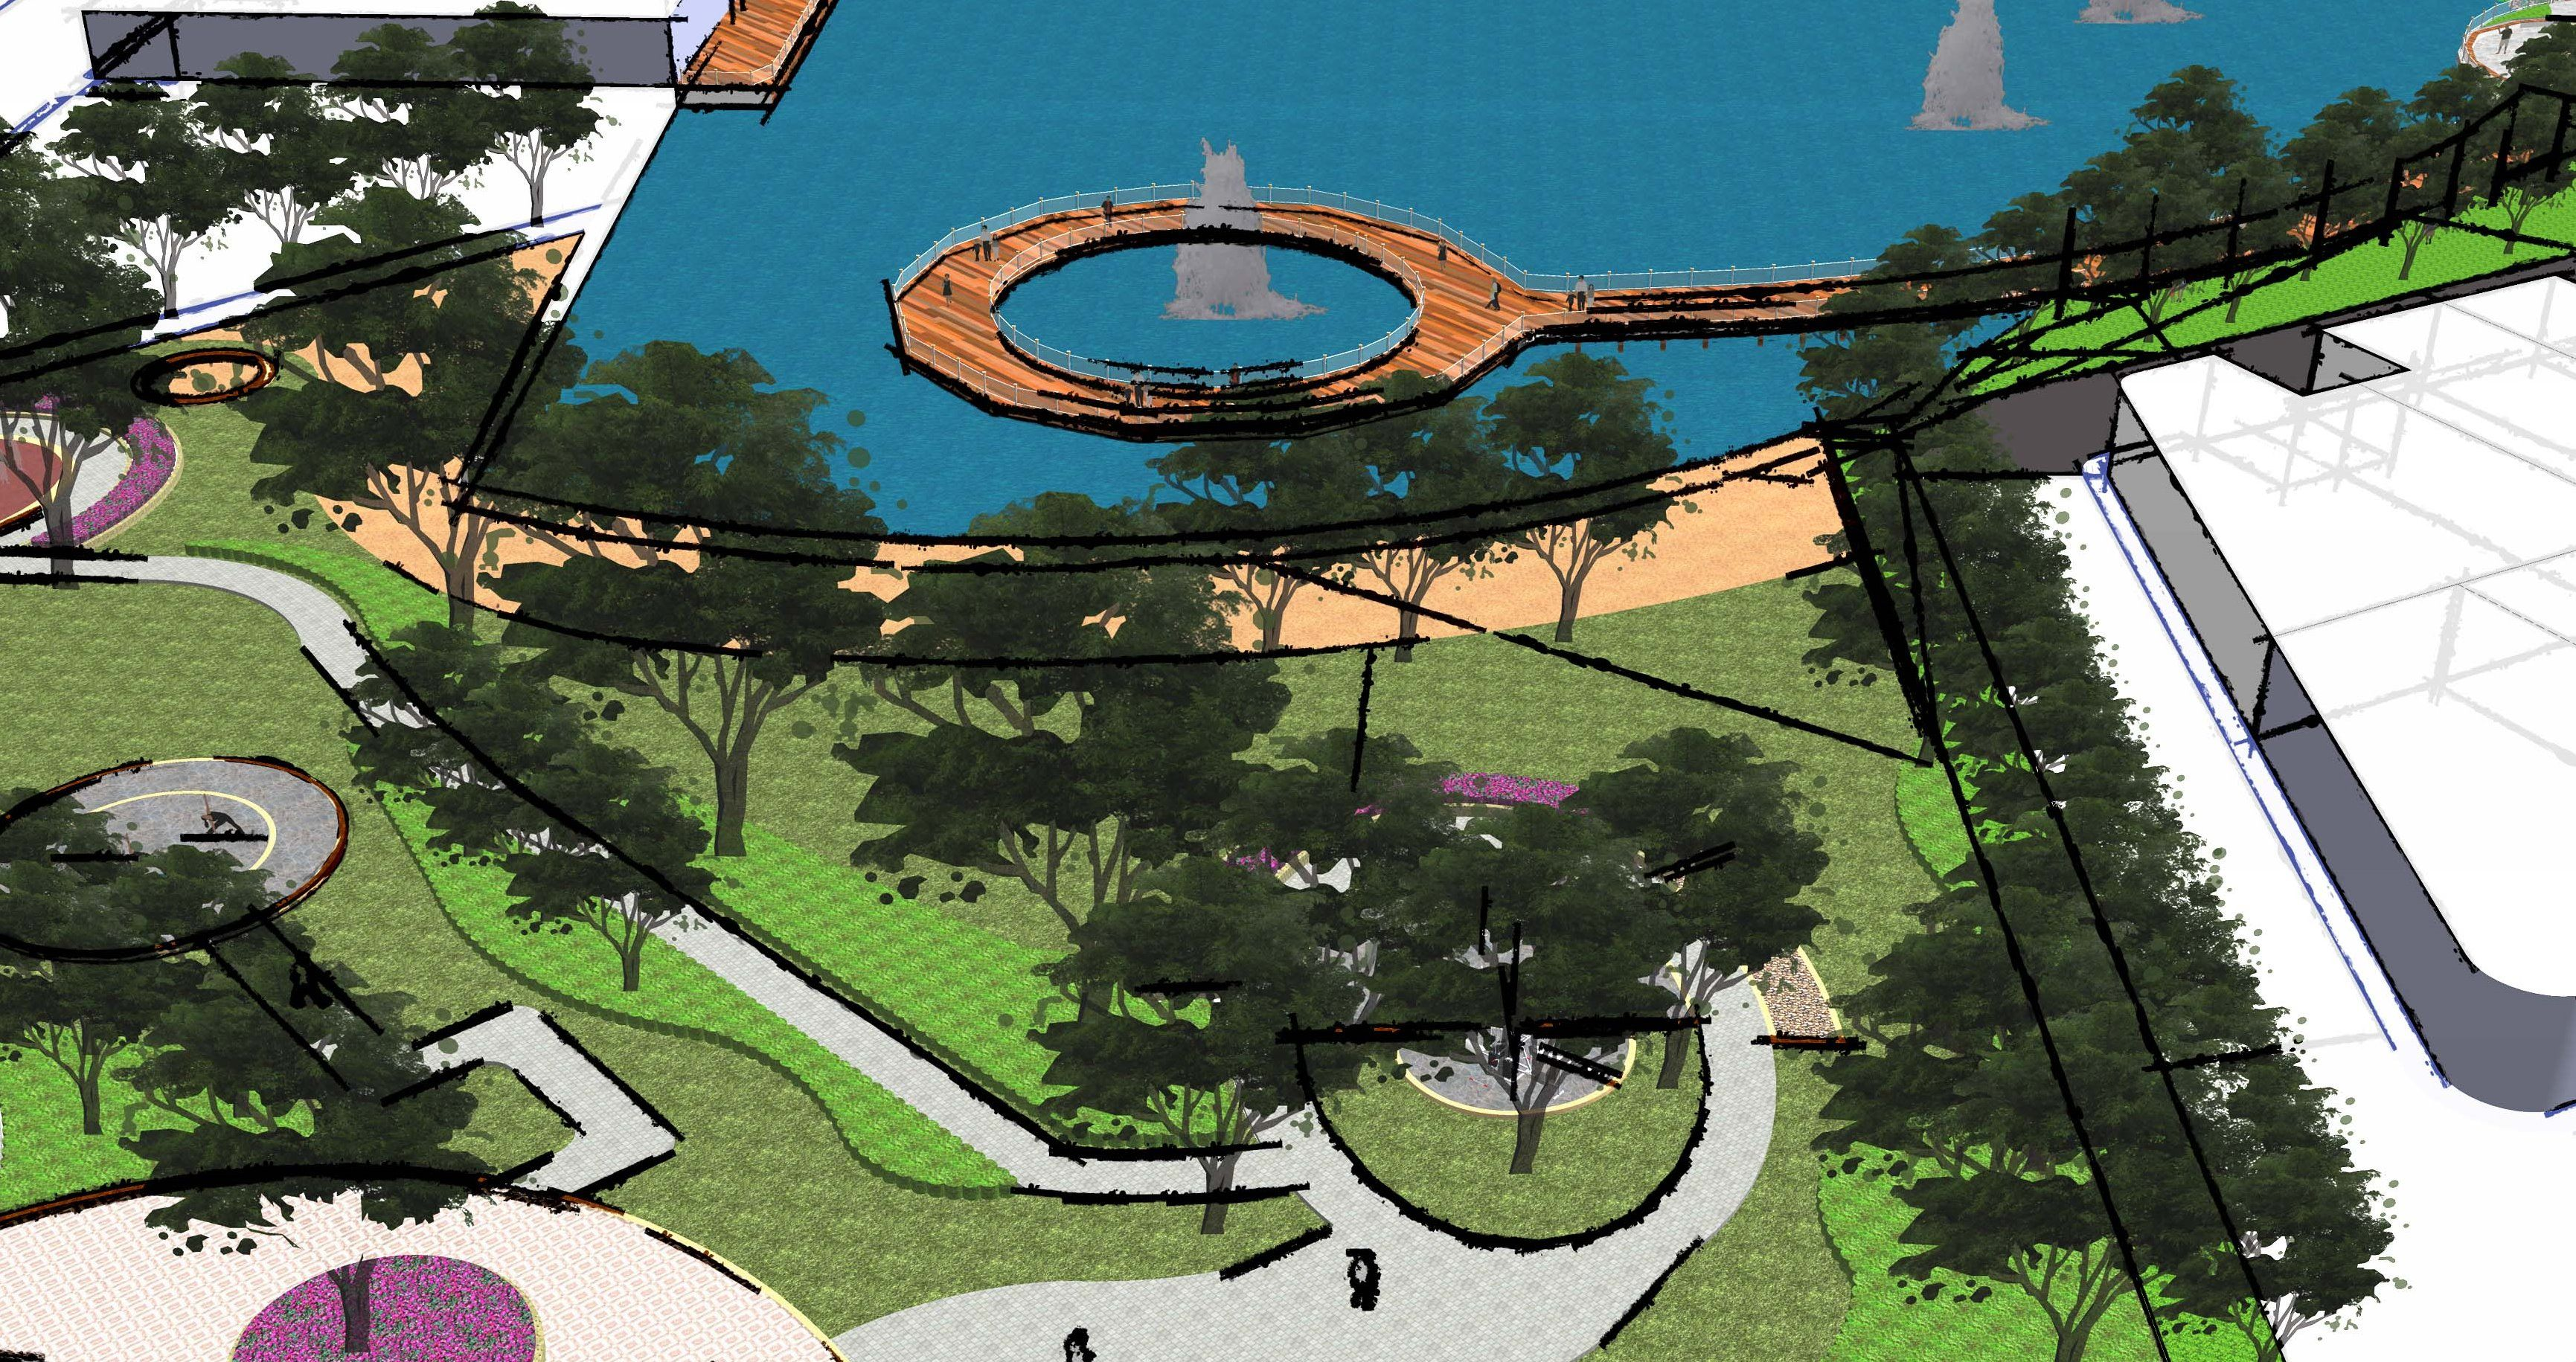 Sweet Jogging Track Design D View  Landscape Design  Pinterest  D  With Glamorous Design With Breathtaking Sunken Gardens St Petersburg Also Meiji Jingu Garden In Addition Value Of Garden Land And Garden Ponds And Fountains As Well As Dream Garden Additionally Garden Up From Ukpinterestcom With   Glamorous Jogging Track Design D View  Landscape Design  Pinterest  D  With Breathtaking Design And Sweet Sunken Gardens St Petersburg Also Meiji Jingu Garden In Addition Value Of Garden Land From Ukpinterestcom